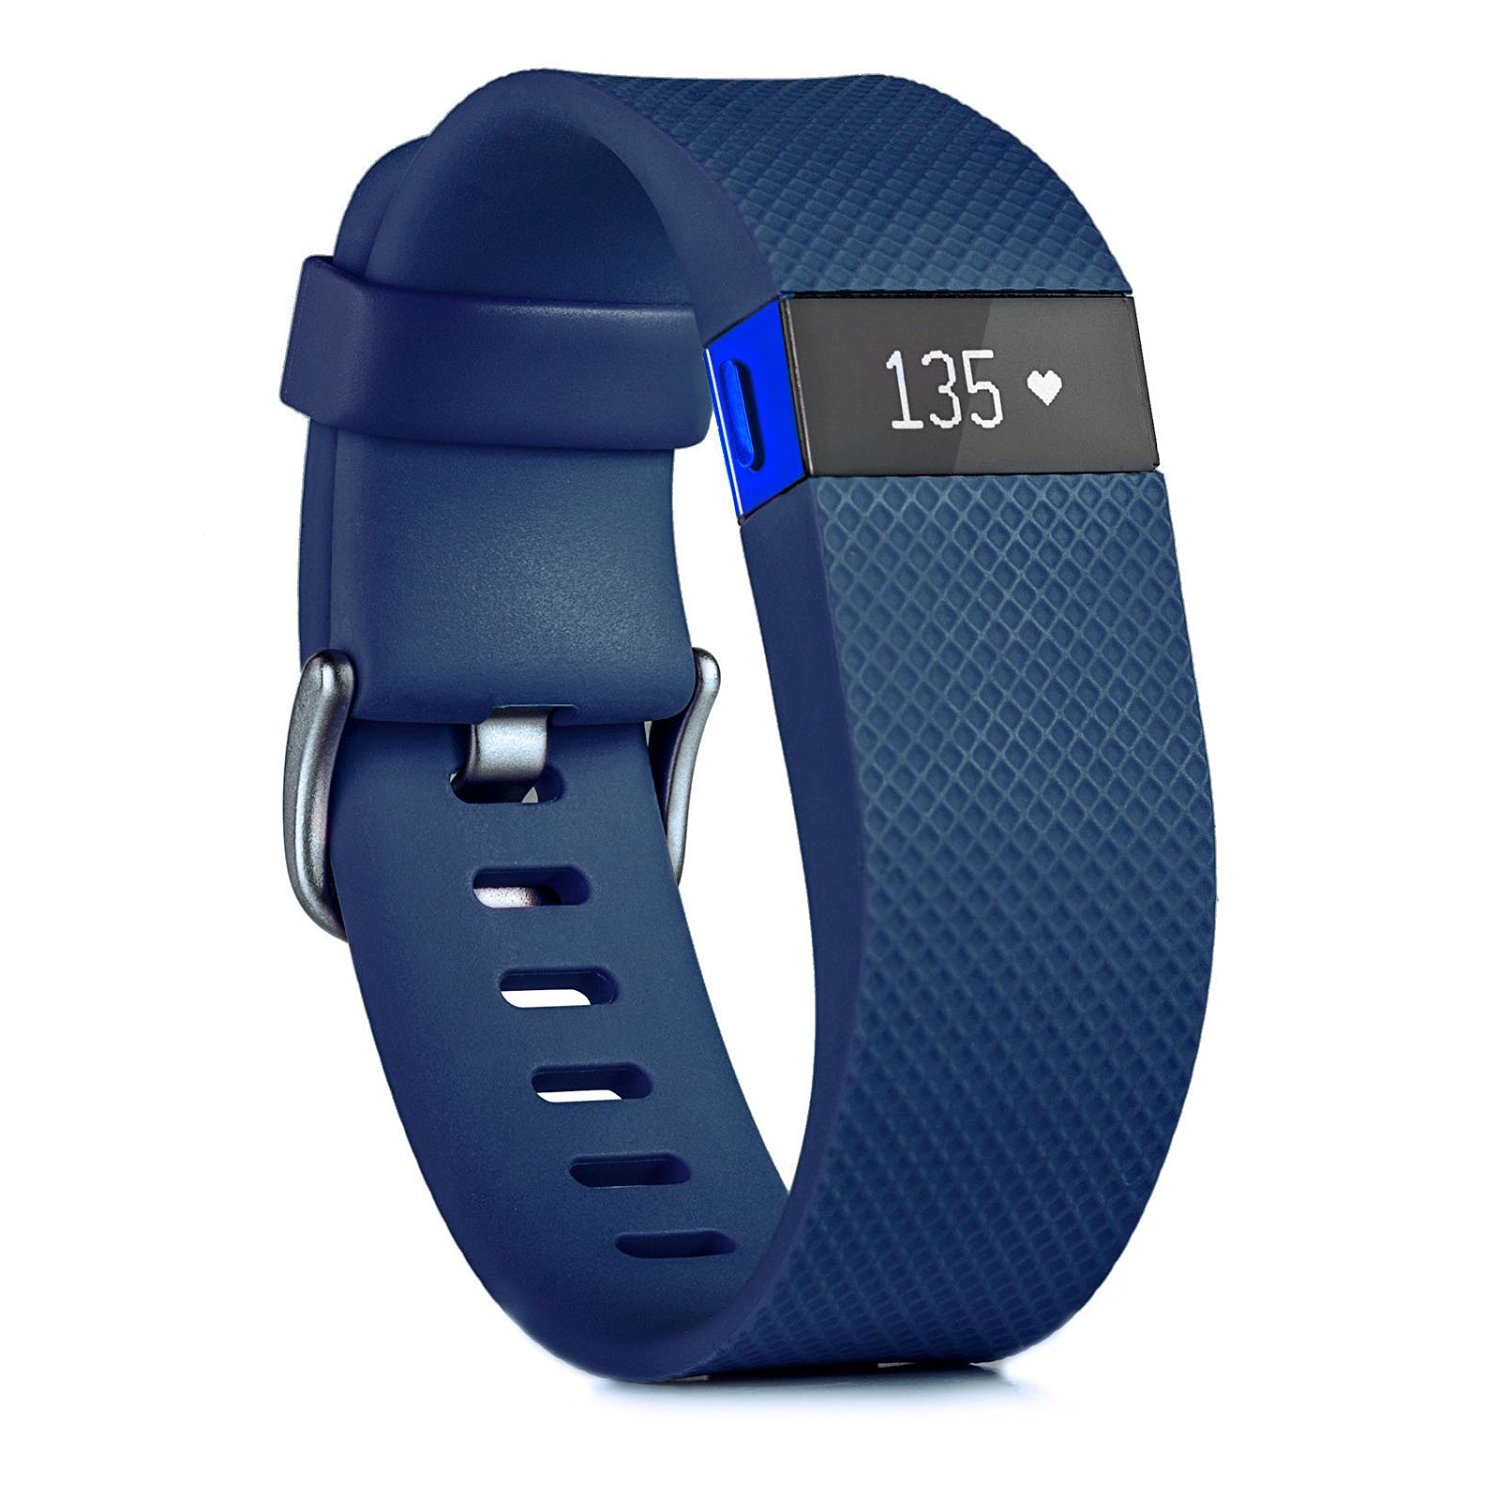 Blue Fitbit Charge HR Activity, Heart Rate + Sleep Wristband (Large)